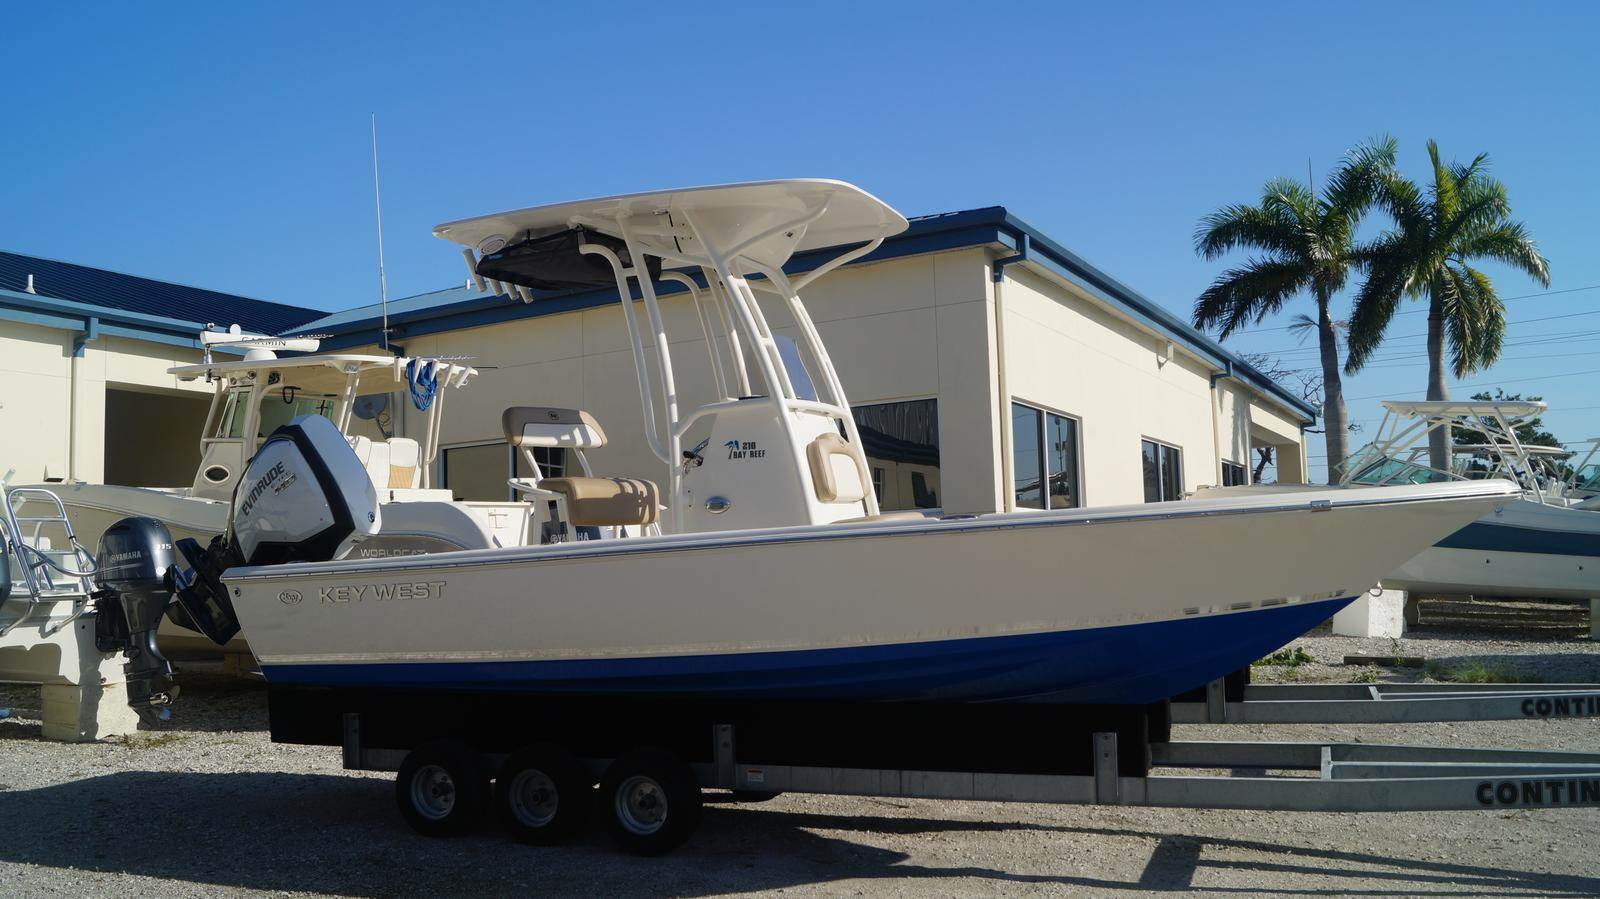 NEW 2019 Key West Boats, Inc. 210 BR - Sara Bay Marina